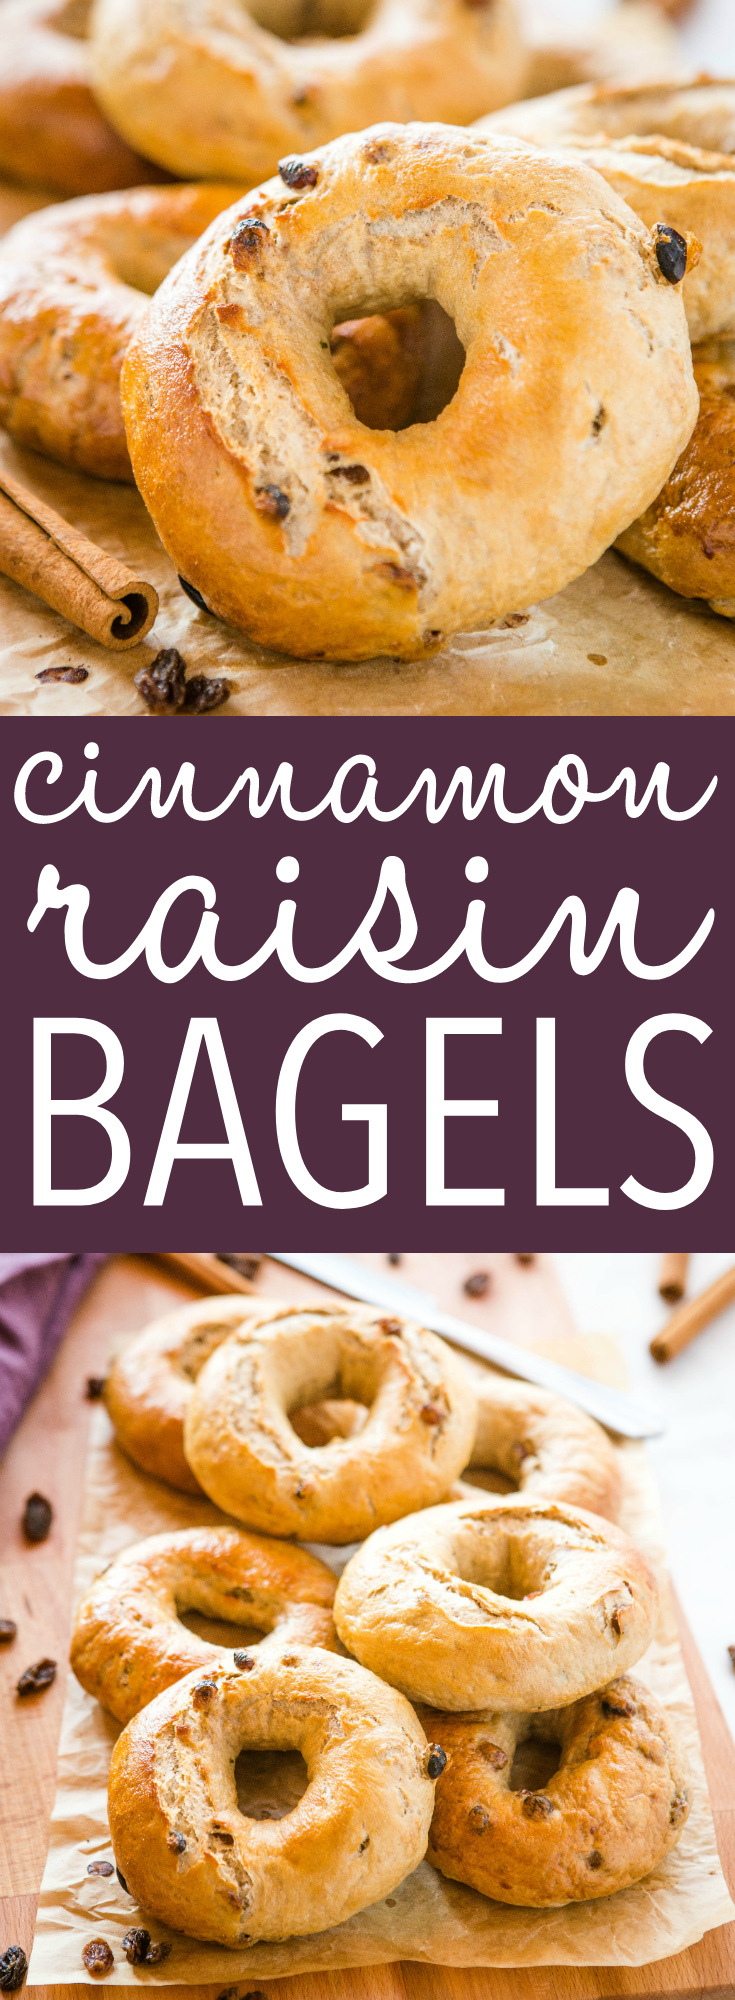 These Easy Homemade Cinnamon Raisin Bagels are perfectly dense & chewy, and packed with spicy cinnamon and juicy raisins. They're SO easy to make with no special equipment or ingredients, and no refined sugar! Recipe from thebusybaker.ca! #cinnamonraisin #bagels #Homemadebagels #howtomakebagels #baking #breakfast via @busybakerblog